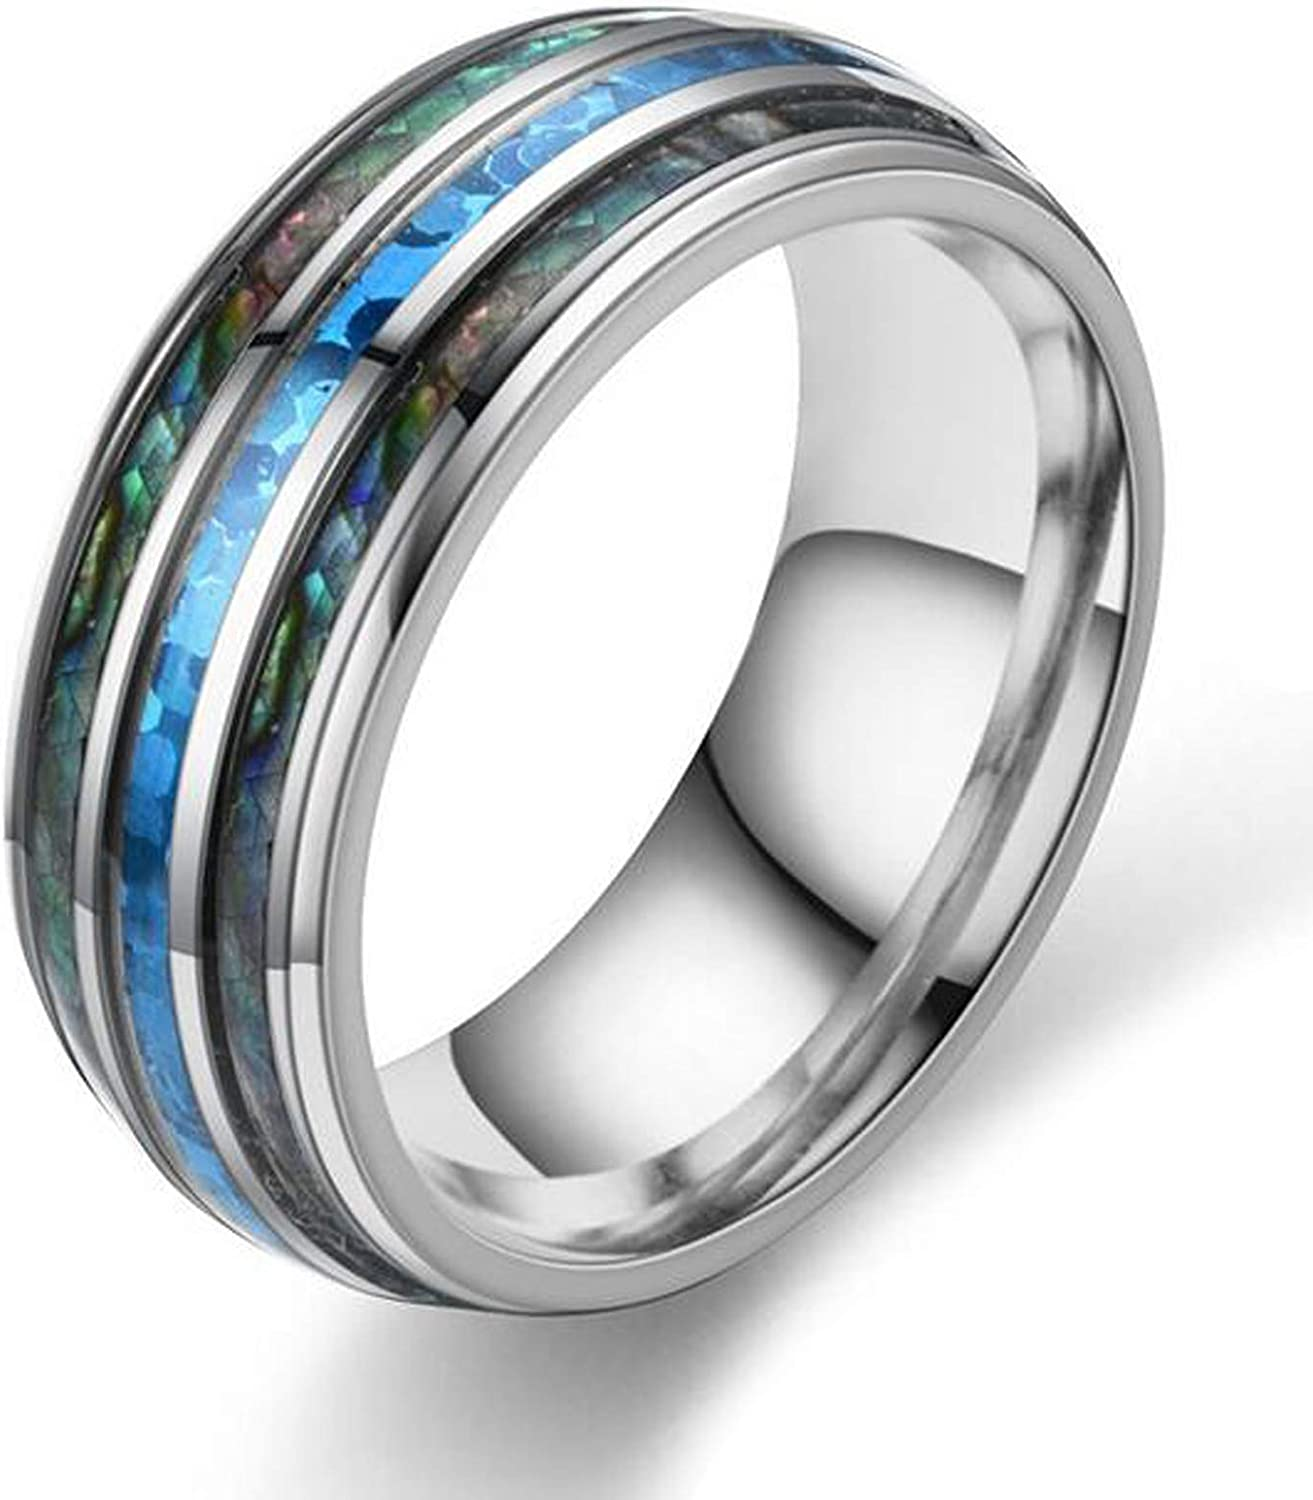 Titansten 8mm Blue Stainless Steel Rings with Carbon Fiber Inlay Comfort Fit Band